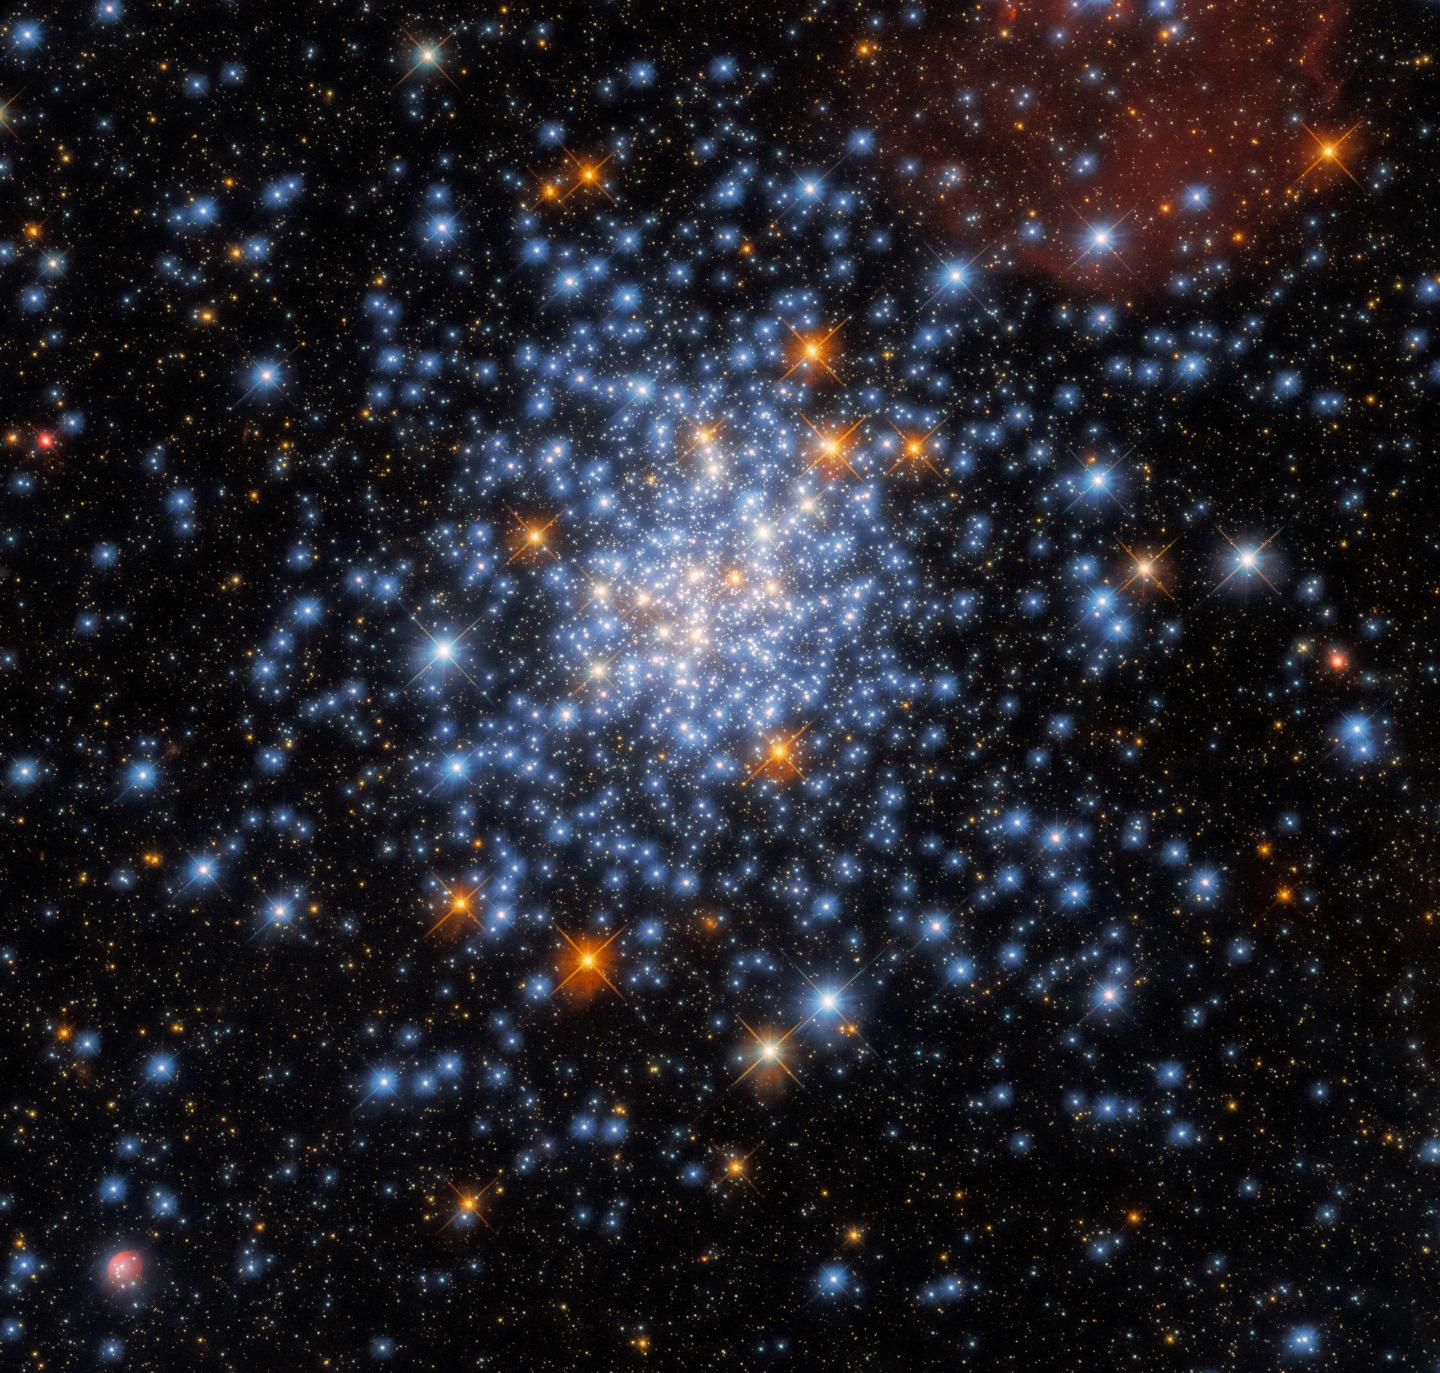 Hubble sees a cluster of red, white, and blue